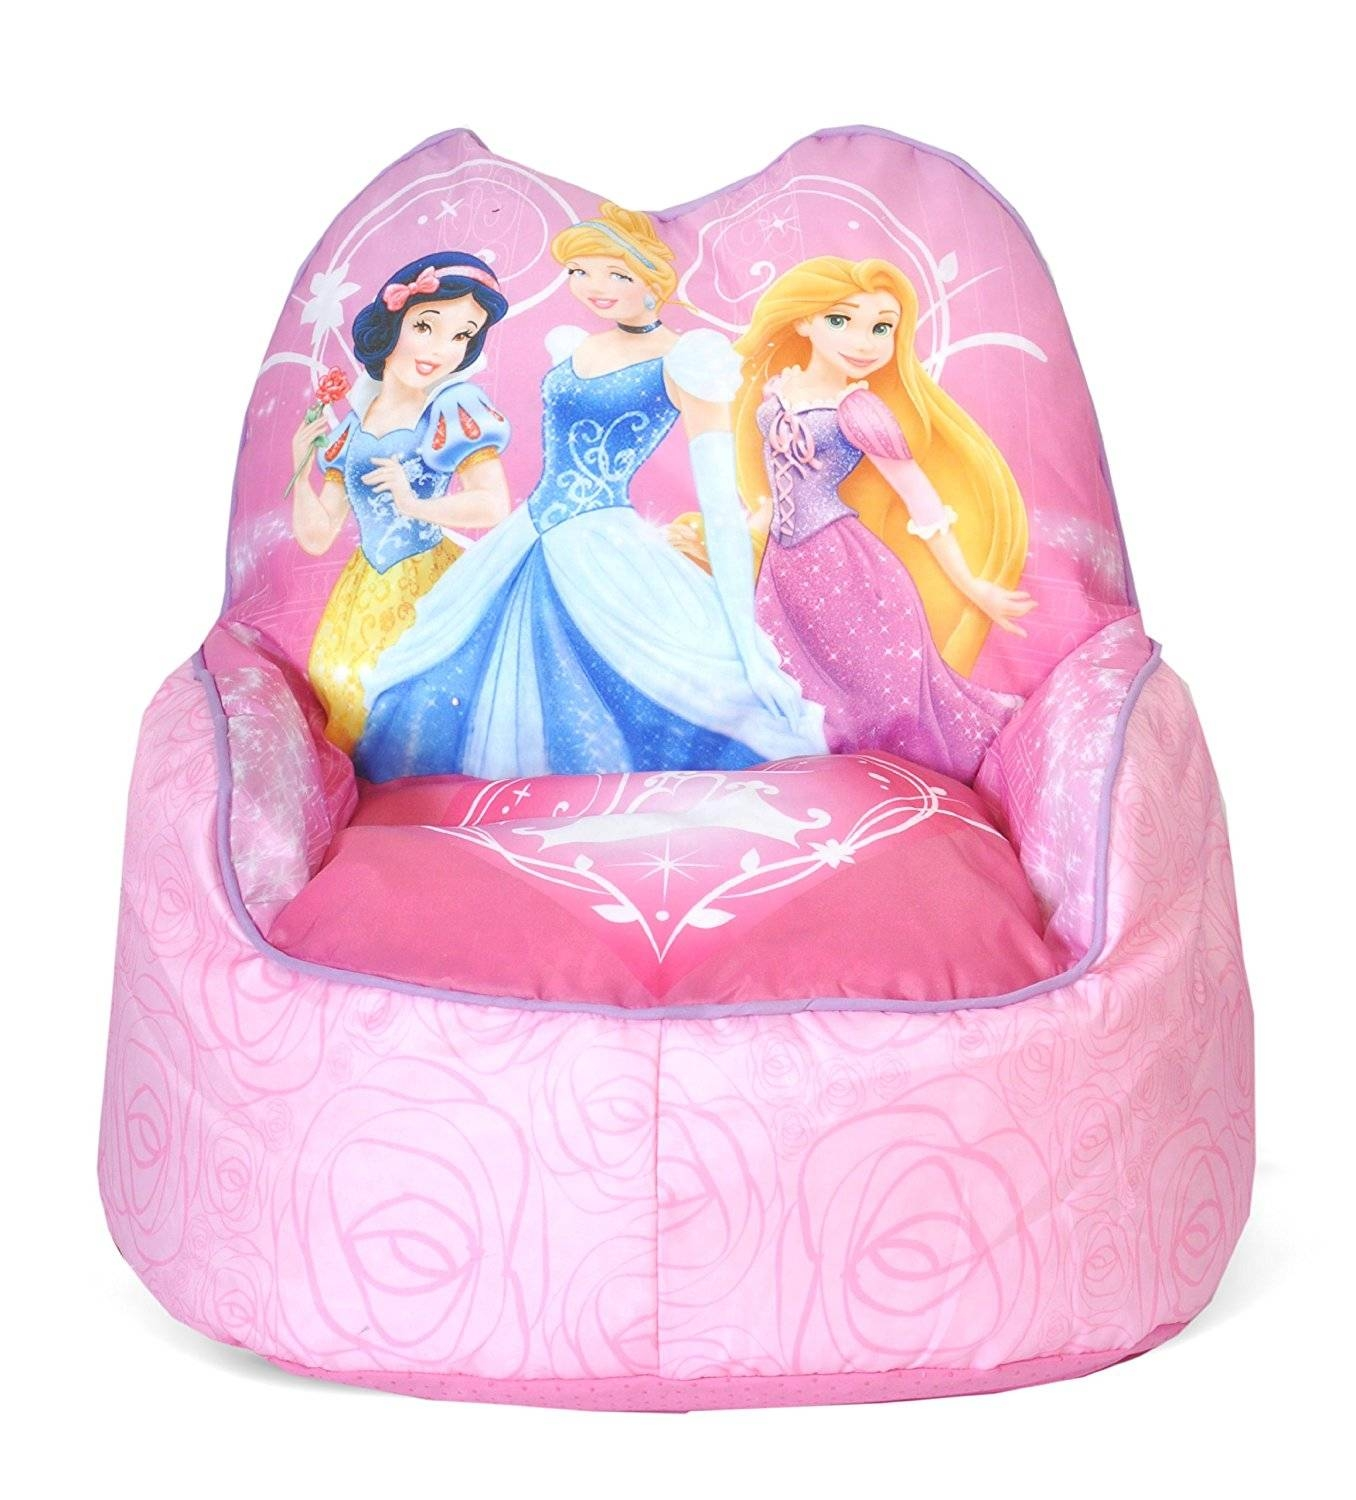 Sofa Chair For Kid | Home Chair Decoration inside Disney Sofa Chairs (Image 13 of 15)